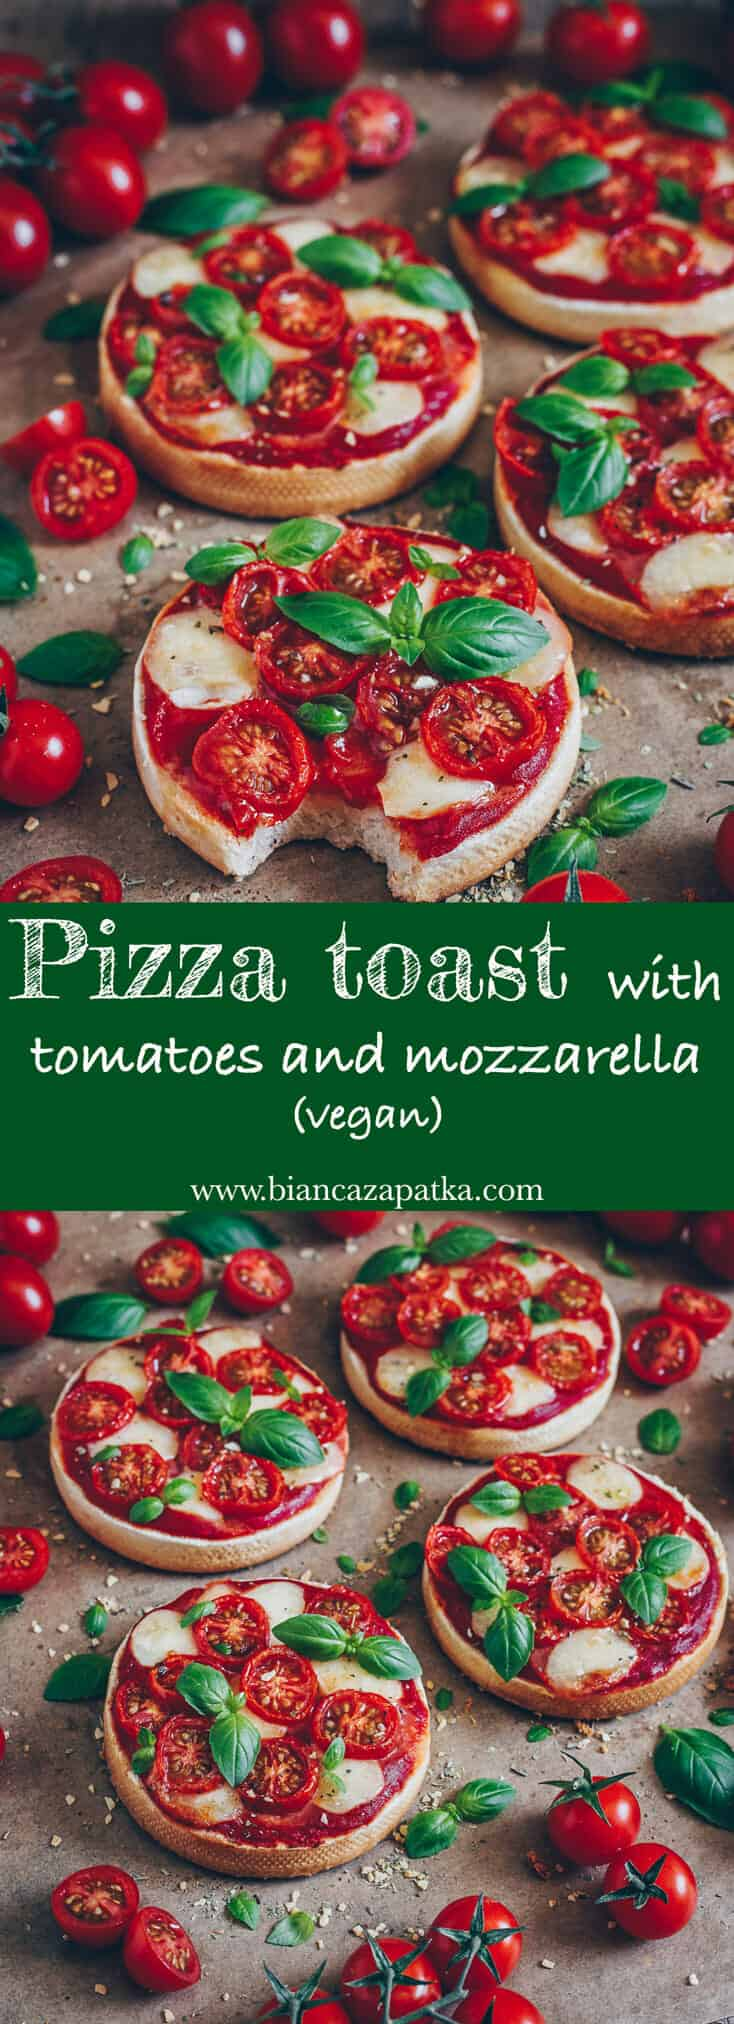 Pizza toast is quick and easy to make and so delicious. A perfect recipe for a simple lunch/ dinner or just as a snack after school. Everyone loves it!